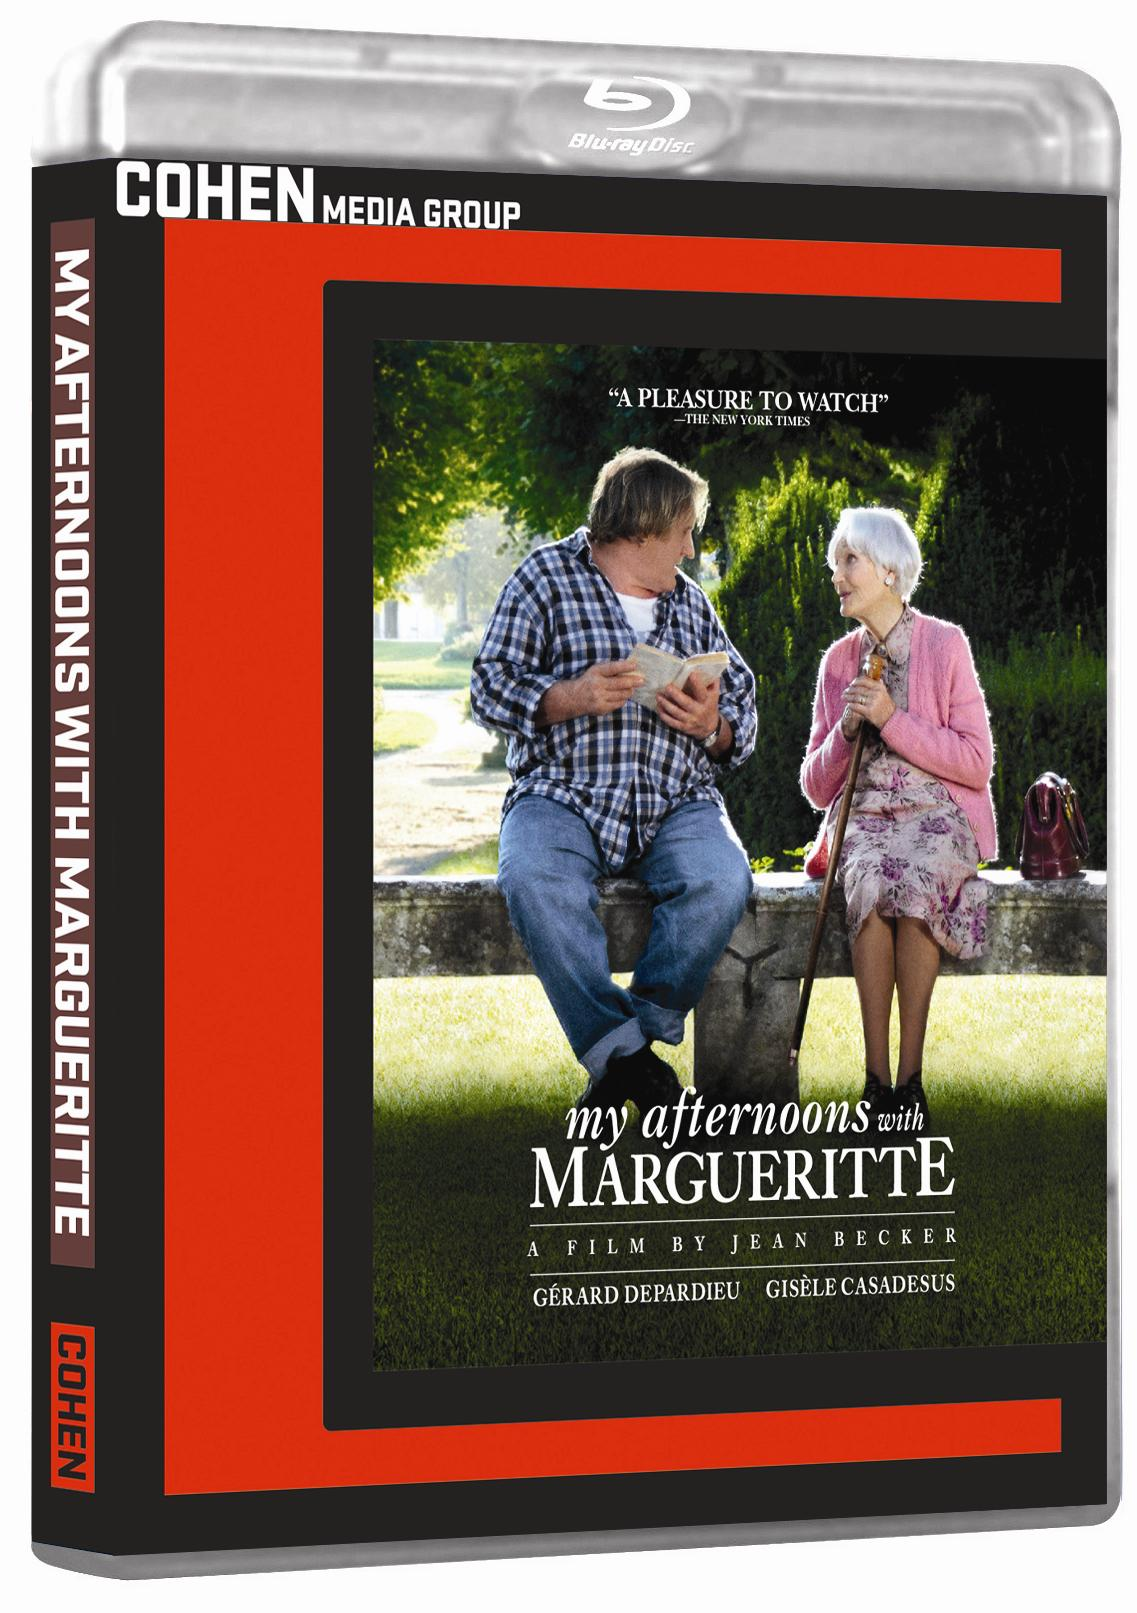 My Afternoons With Margueritte BLU-RAY Review